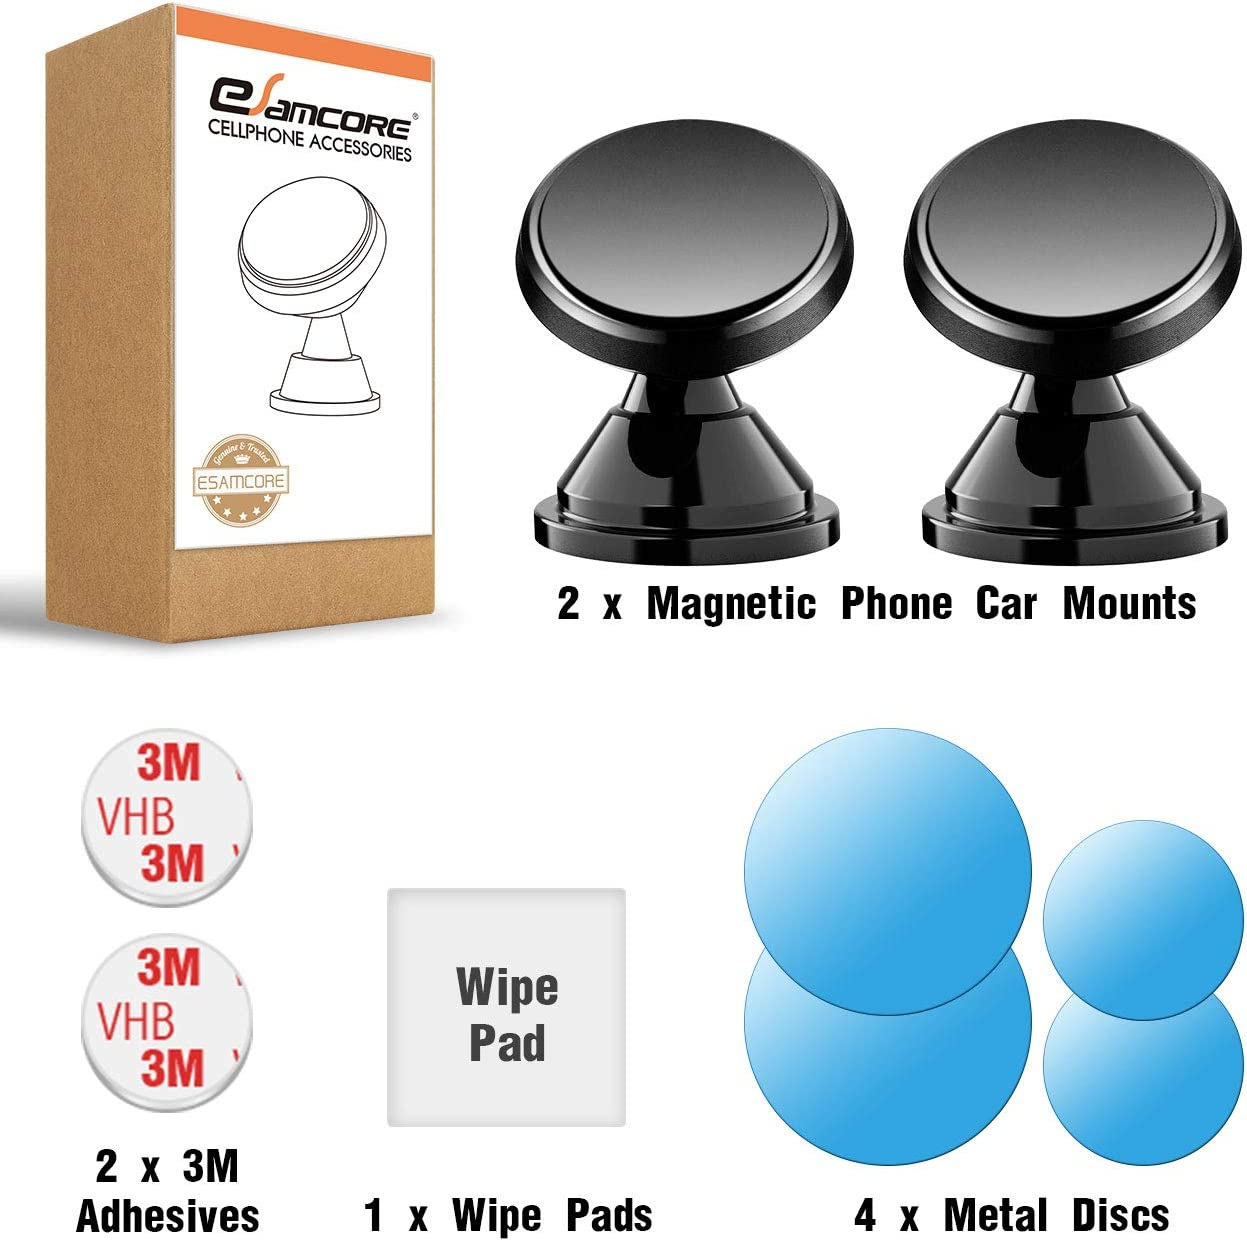 2-Pack CD eSamcore Phone Magnet Sticker for Magnetic Car Phone Mount Holder /& Cradle /& Stand for Windshield Dashboard 1.7 X 1.7 Inch Vent Wireless Charging Compatible Phone Metal Plate